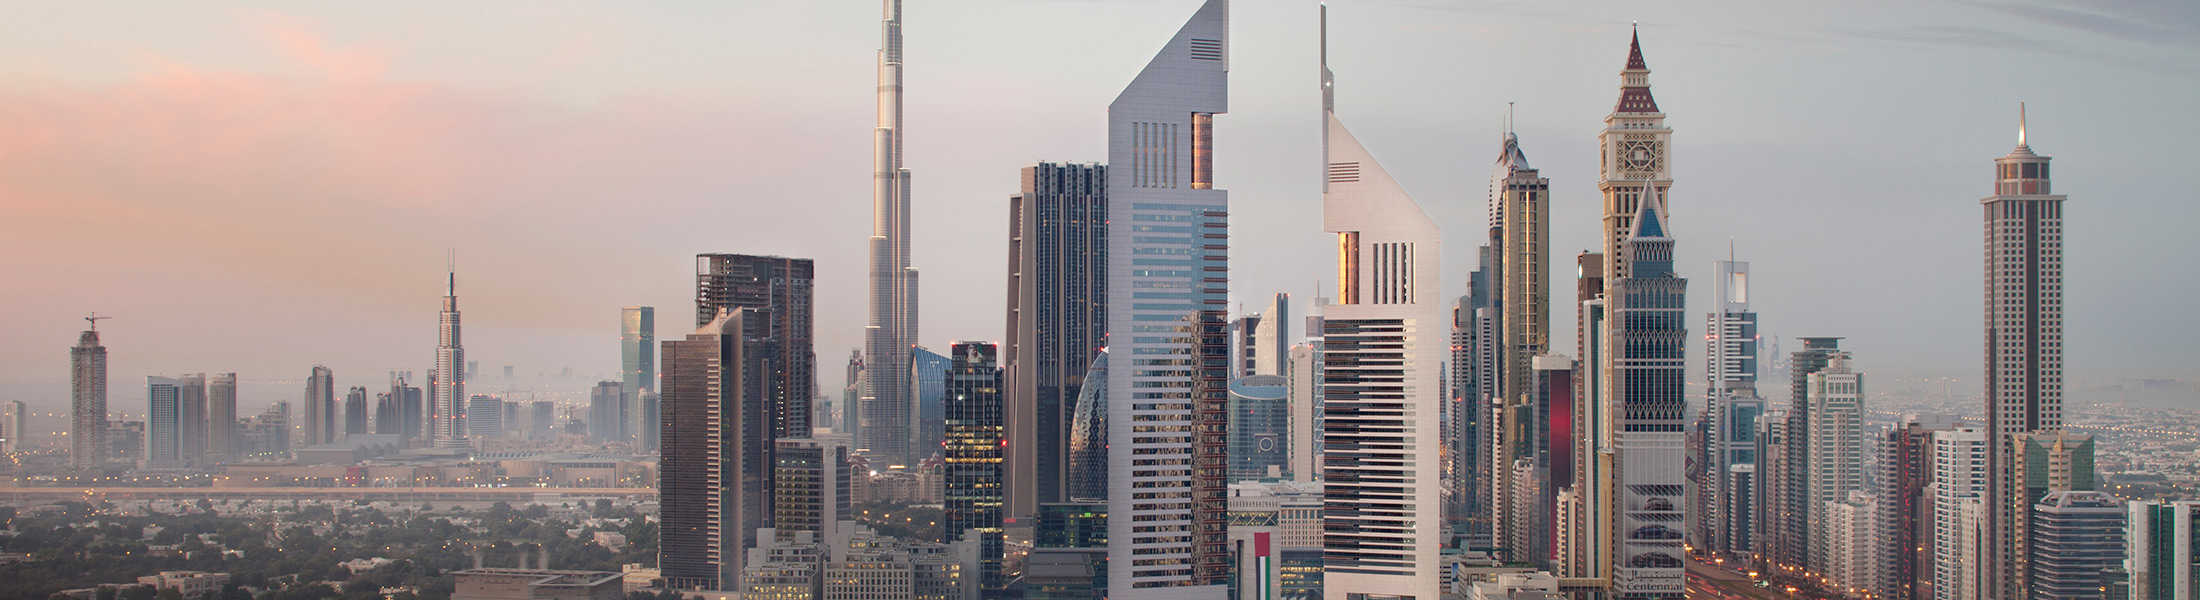 Aerial view of Jumeirah Emirates Towers and the Dubai skyline